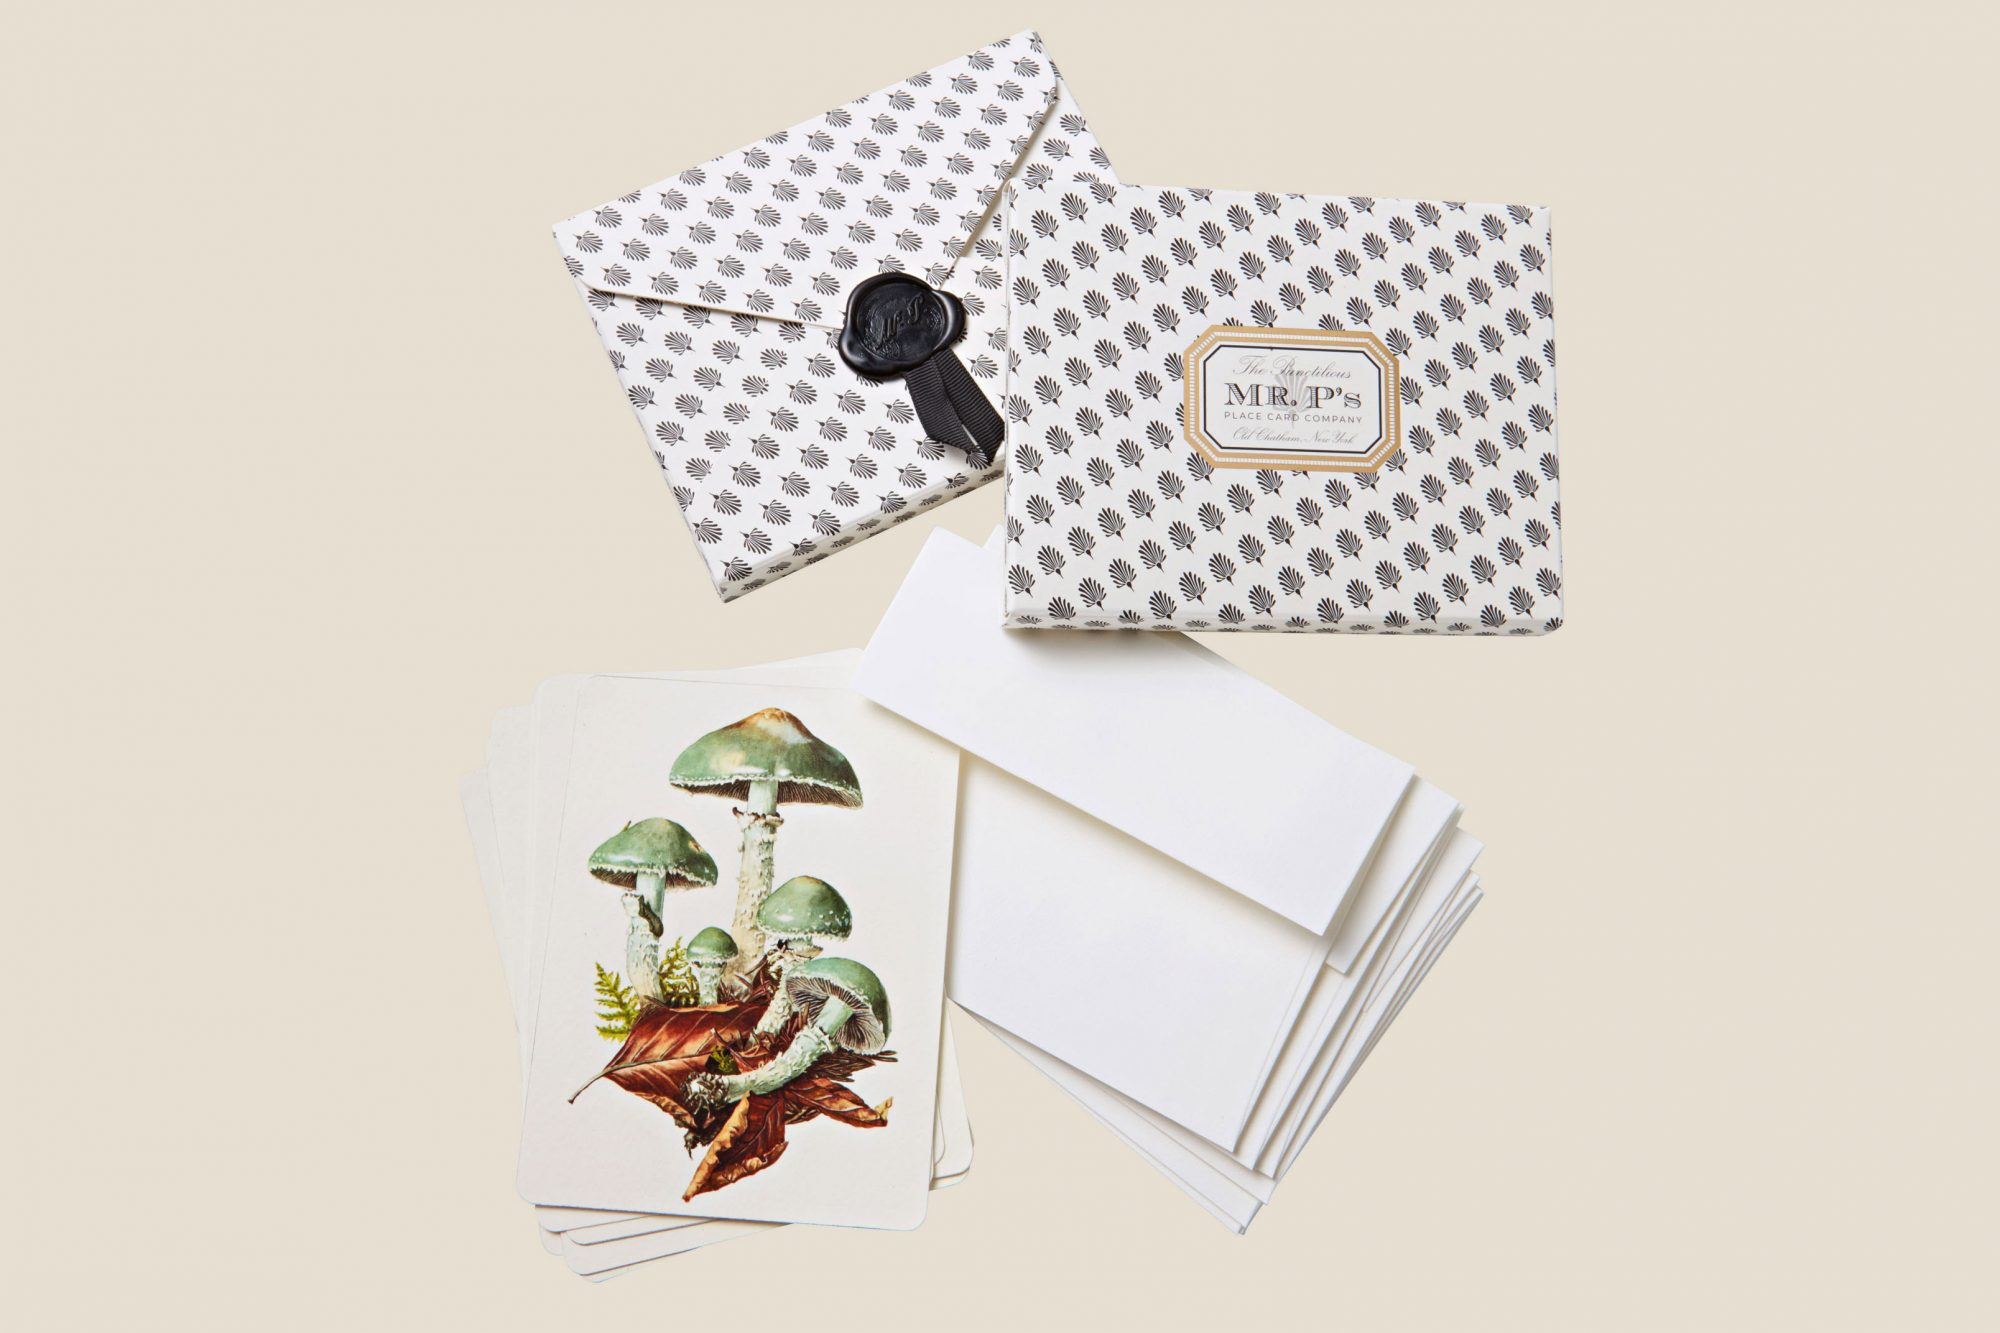 the punctilous notecards